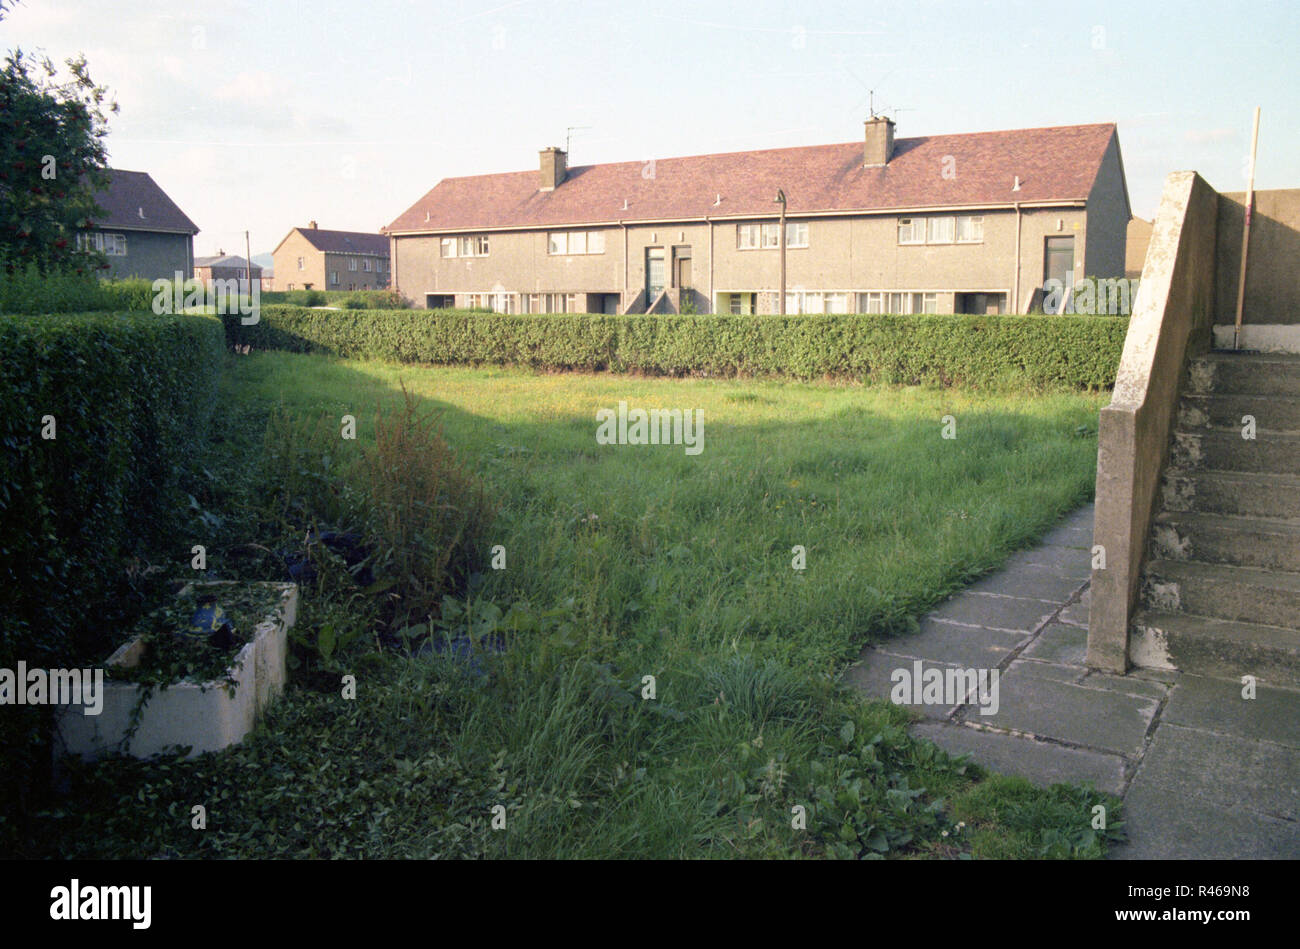 Massive garden belonging to a small duplex house in Clydebank. - Stock Image